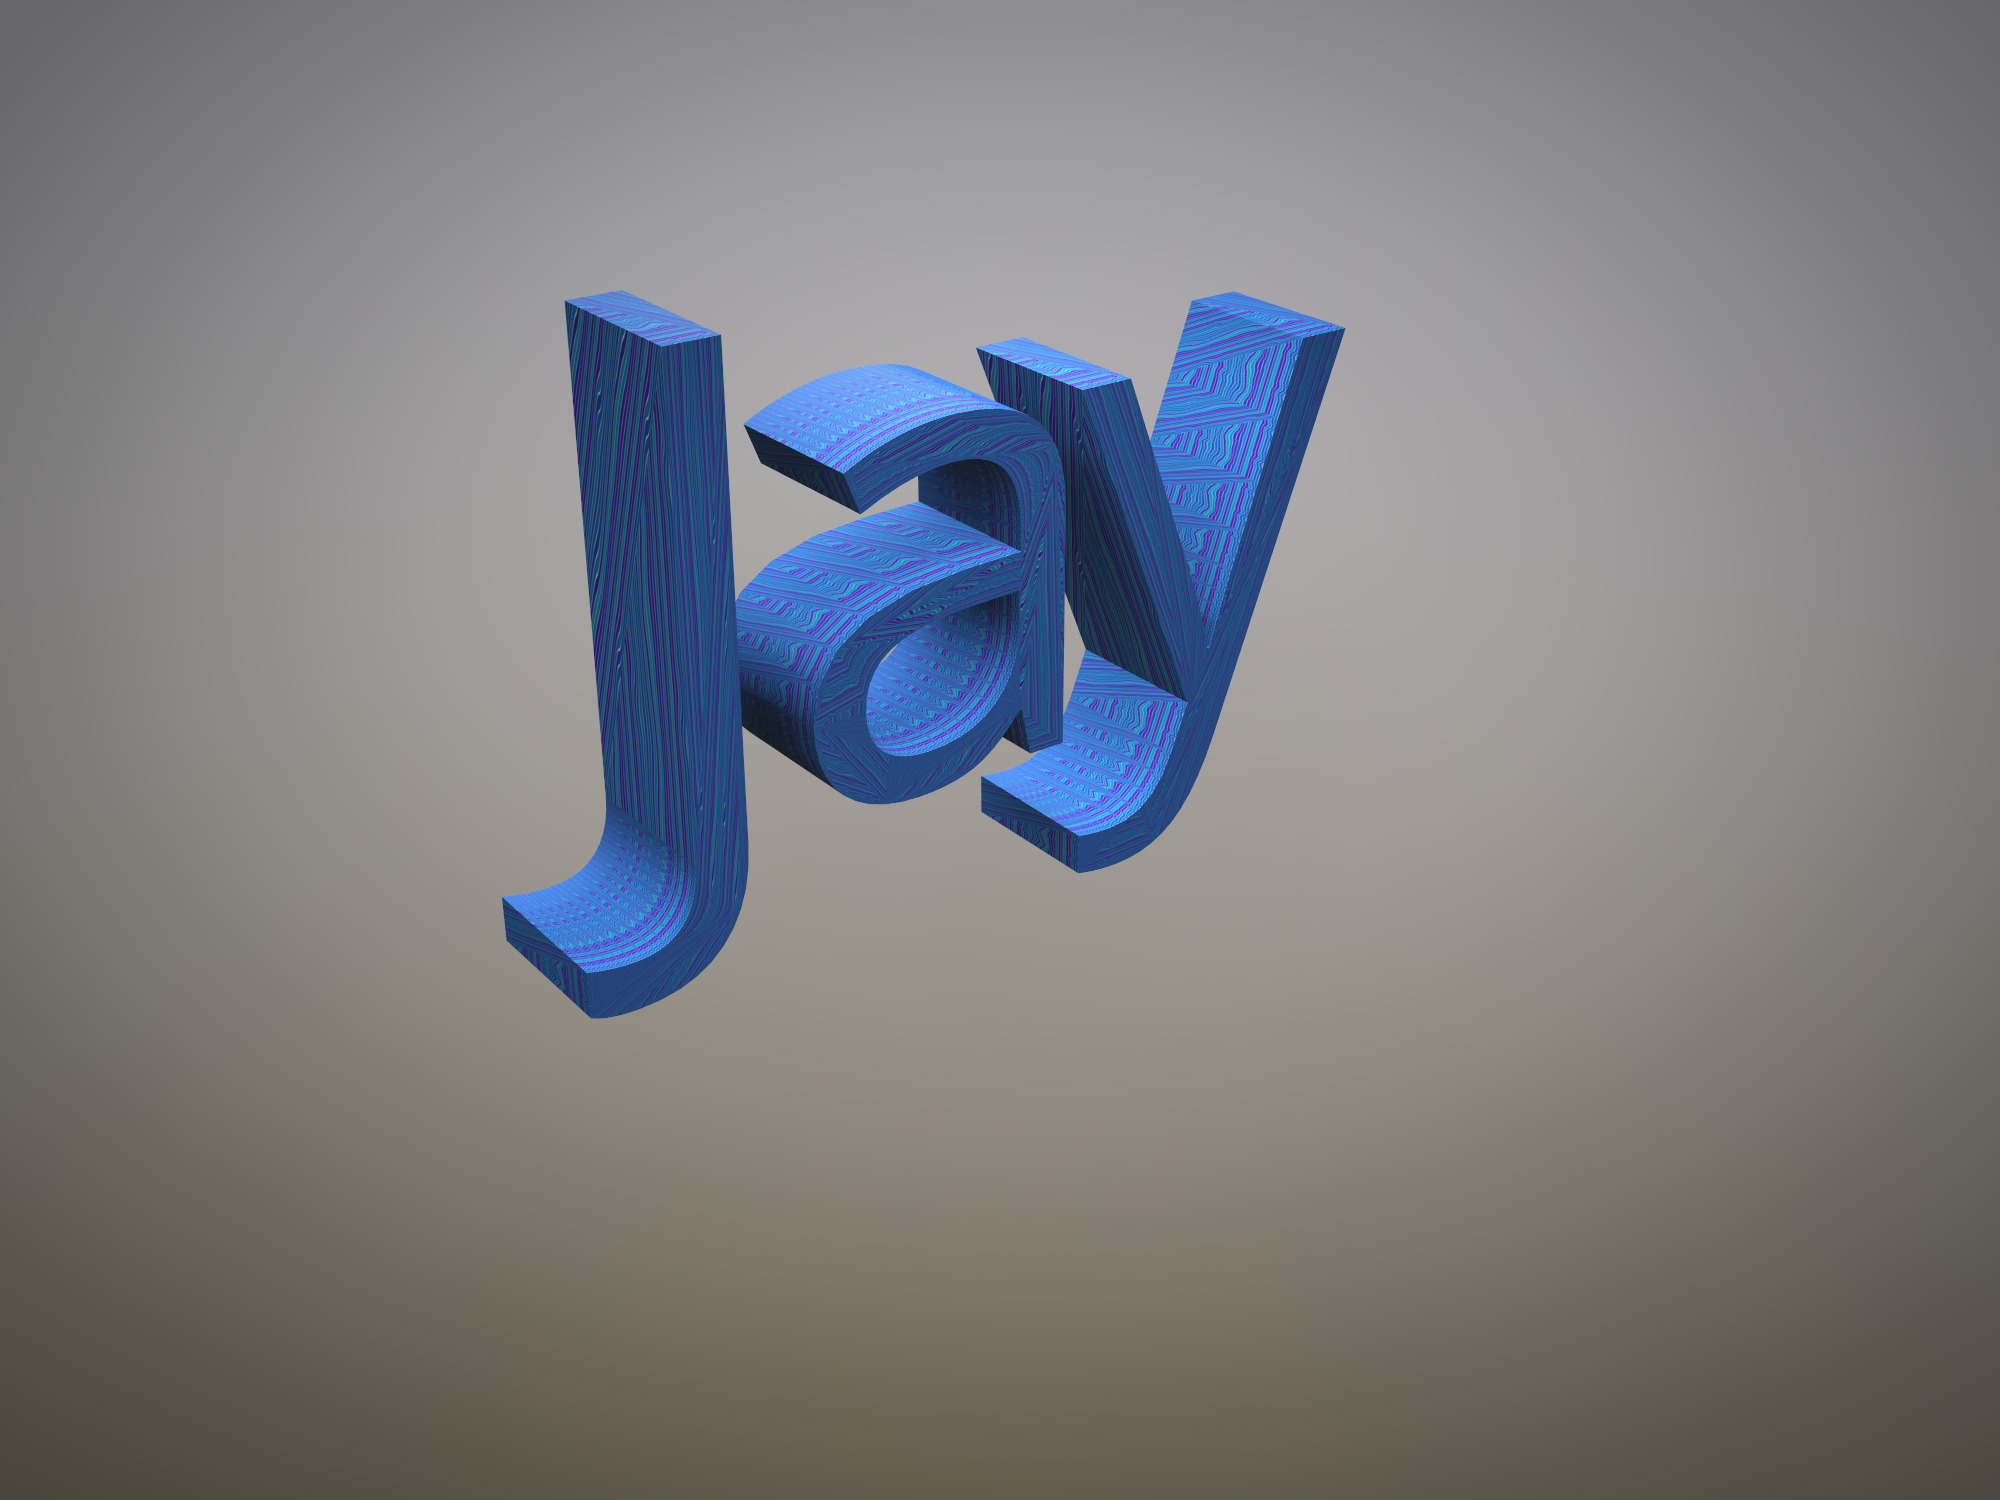 jay 1 (copy) - 3D design by Jeremiah Carpio on Dec 16, 2018